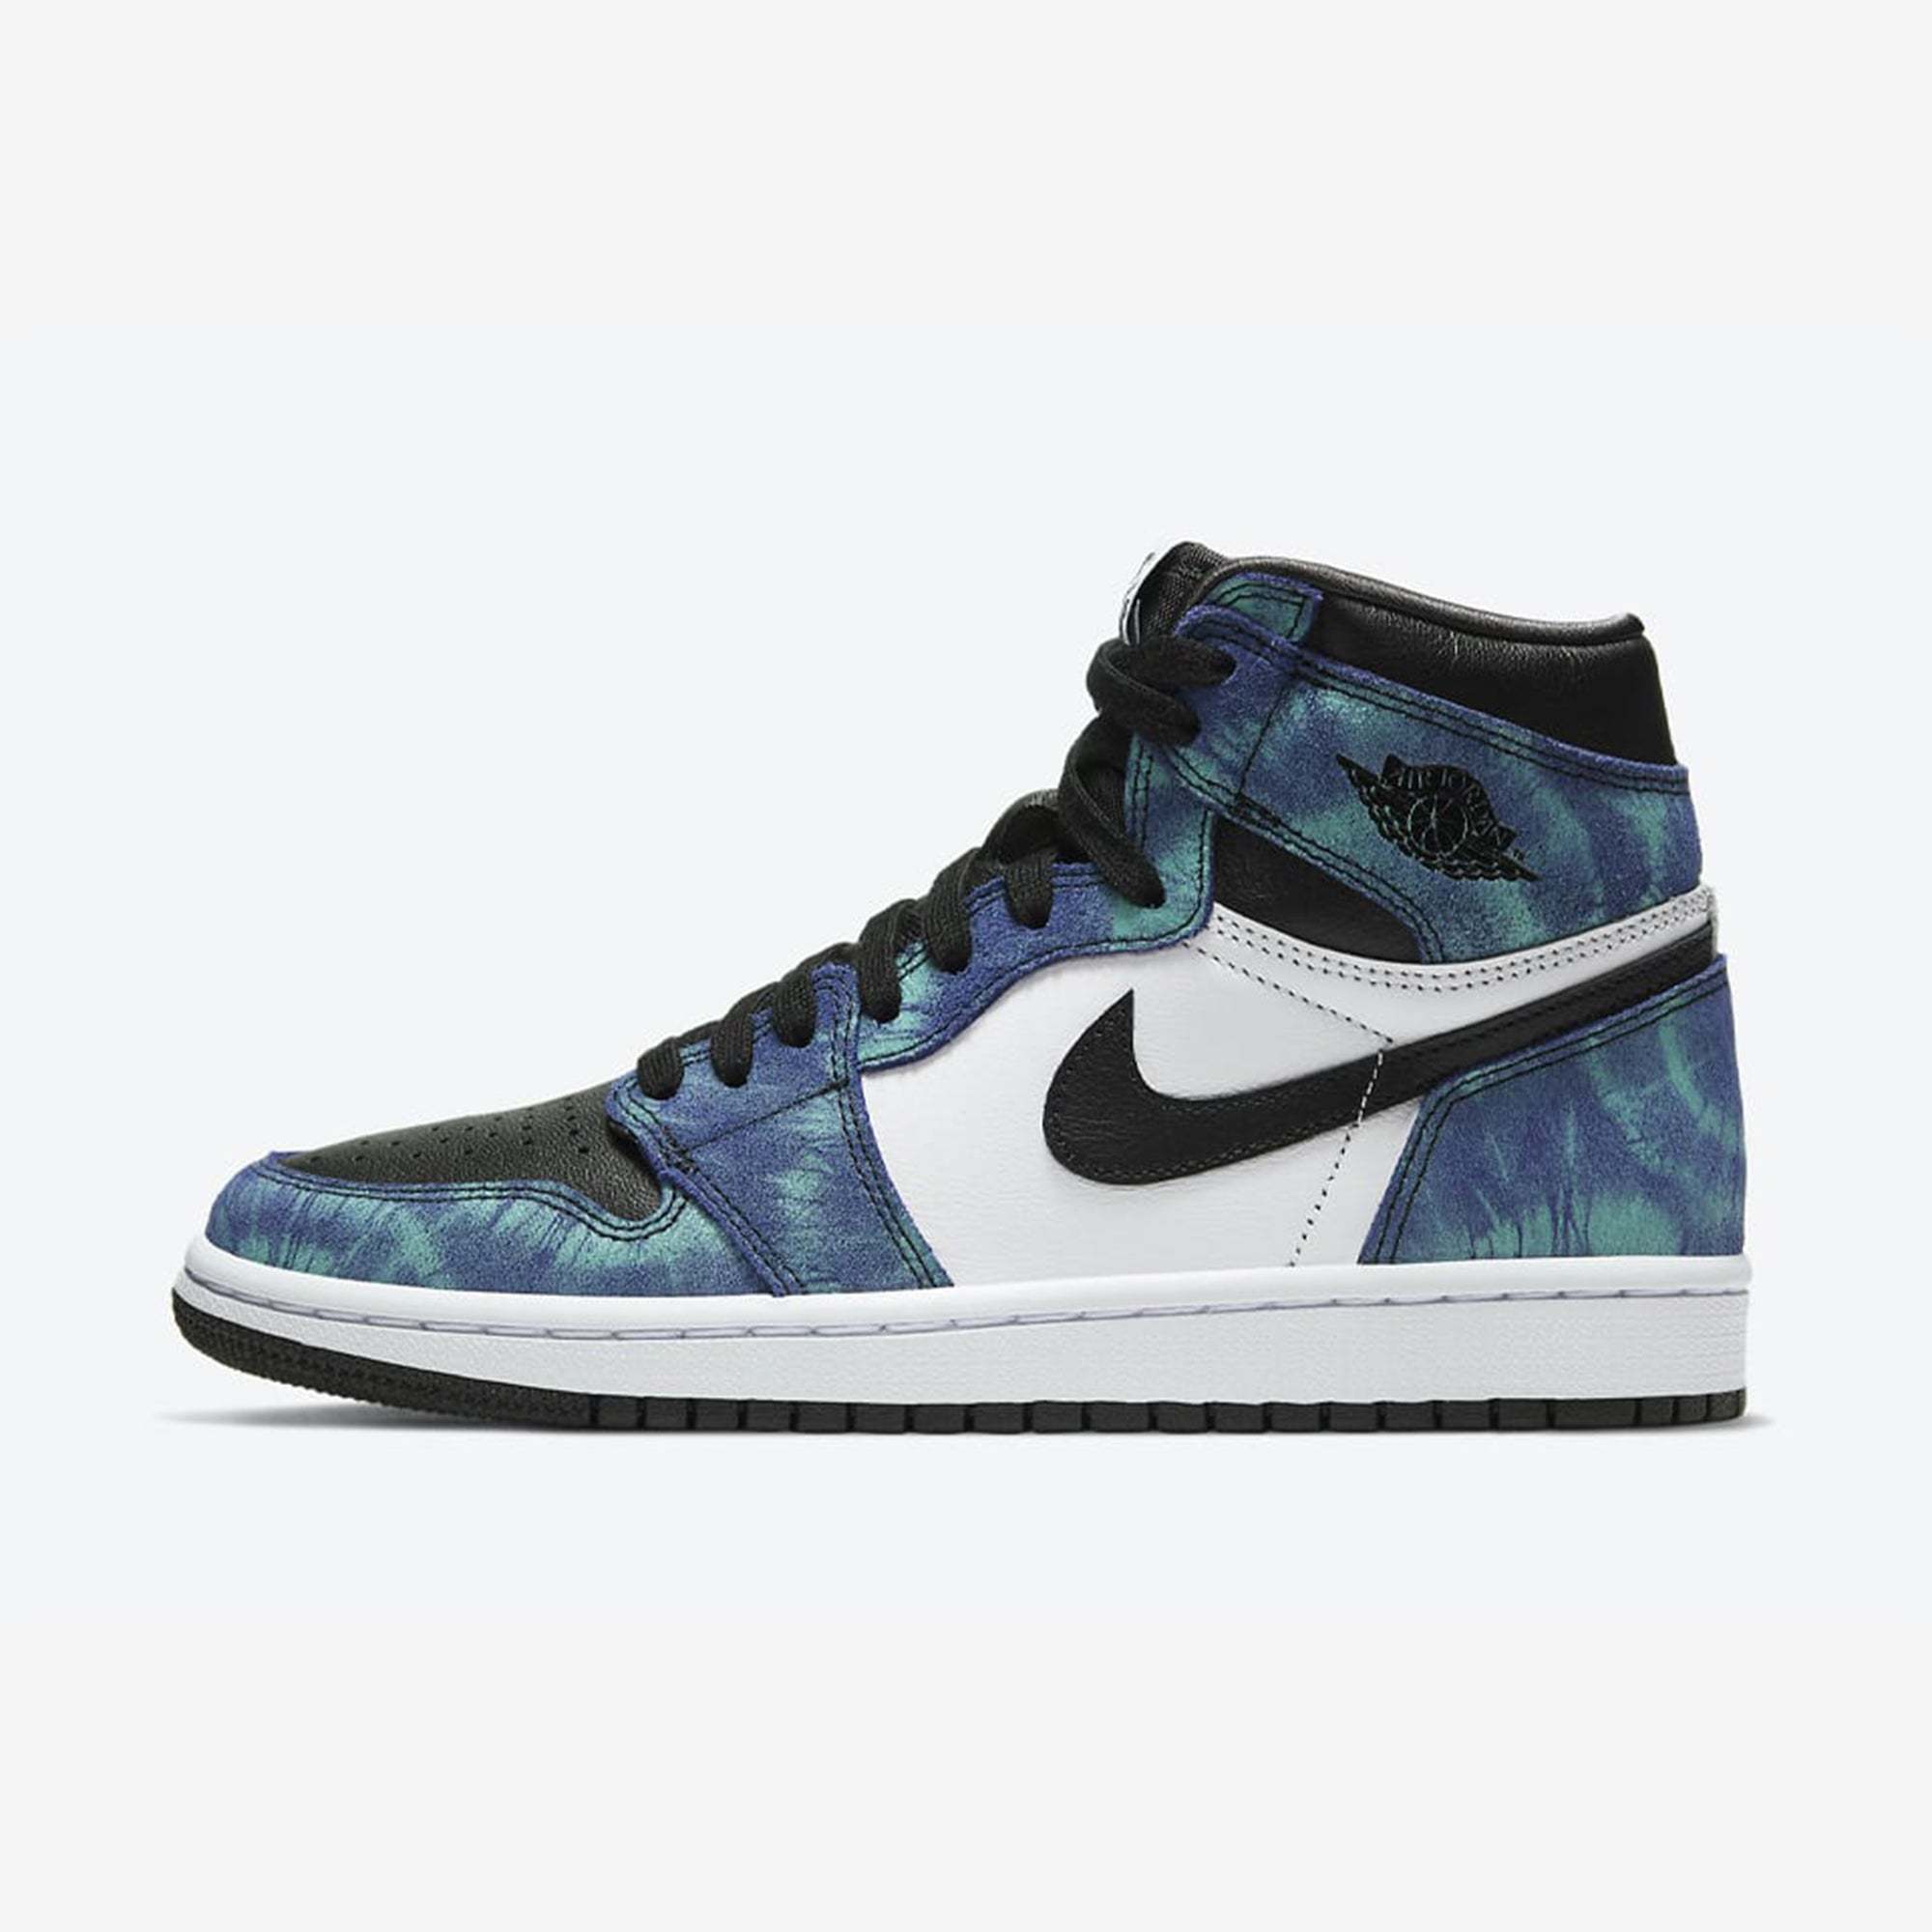 Jordan 1 Retro High Tie Dye (W)